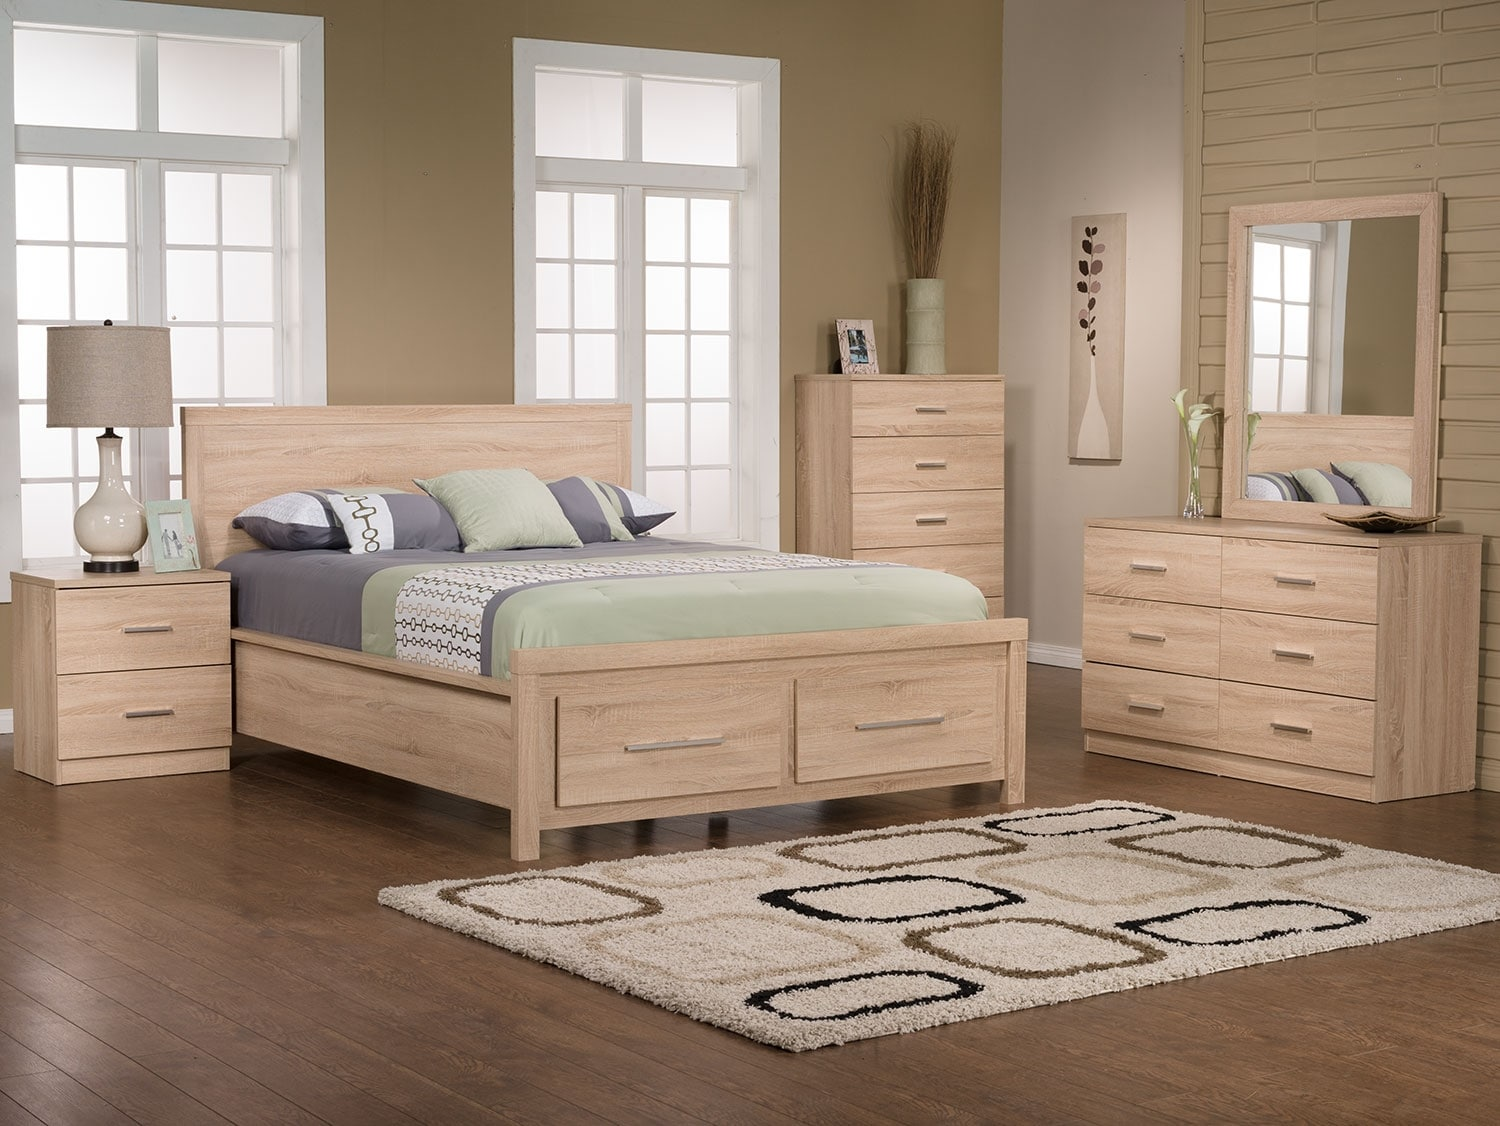 Bedroom Furniture - Sierra Full 6pc Bedroom